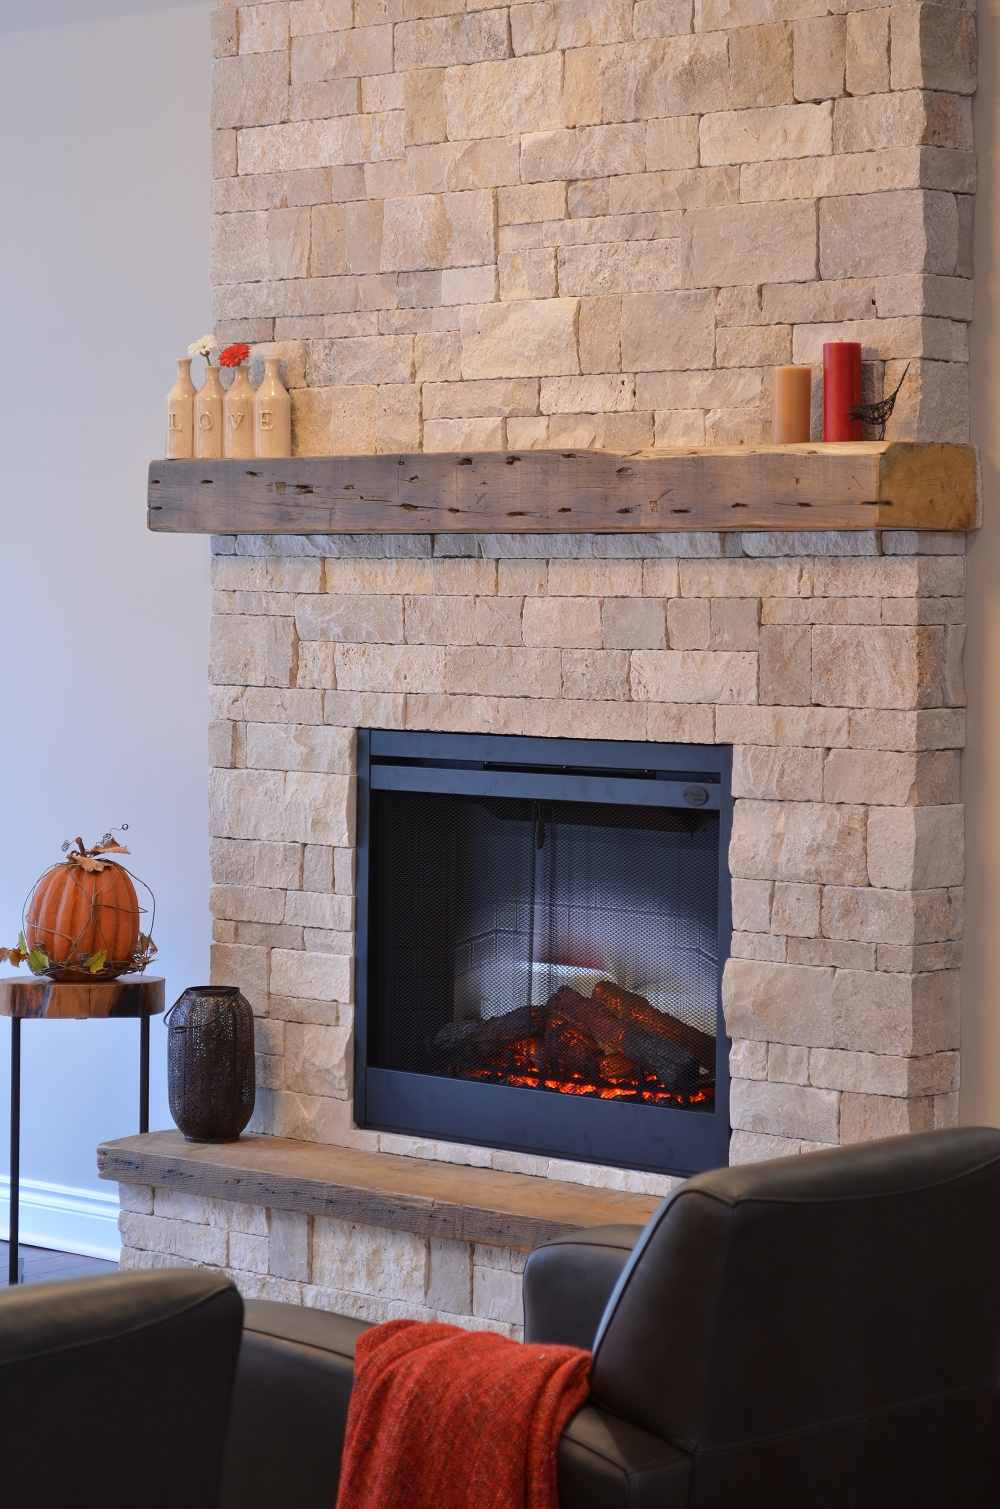 CUSTOM STONE FIREPLACE ~ Dimplex BF39DXP + Erthcoverings Durango Splitface + Reclaimed beams